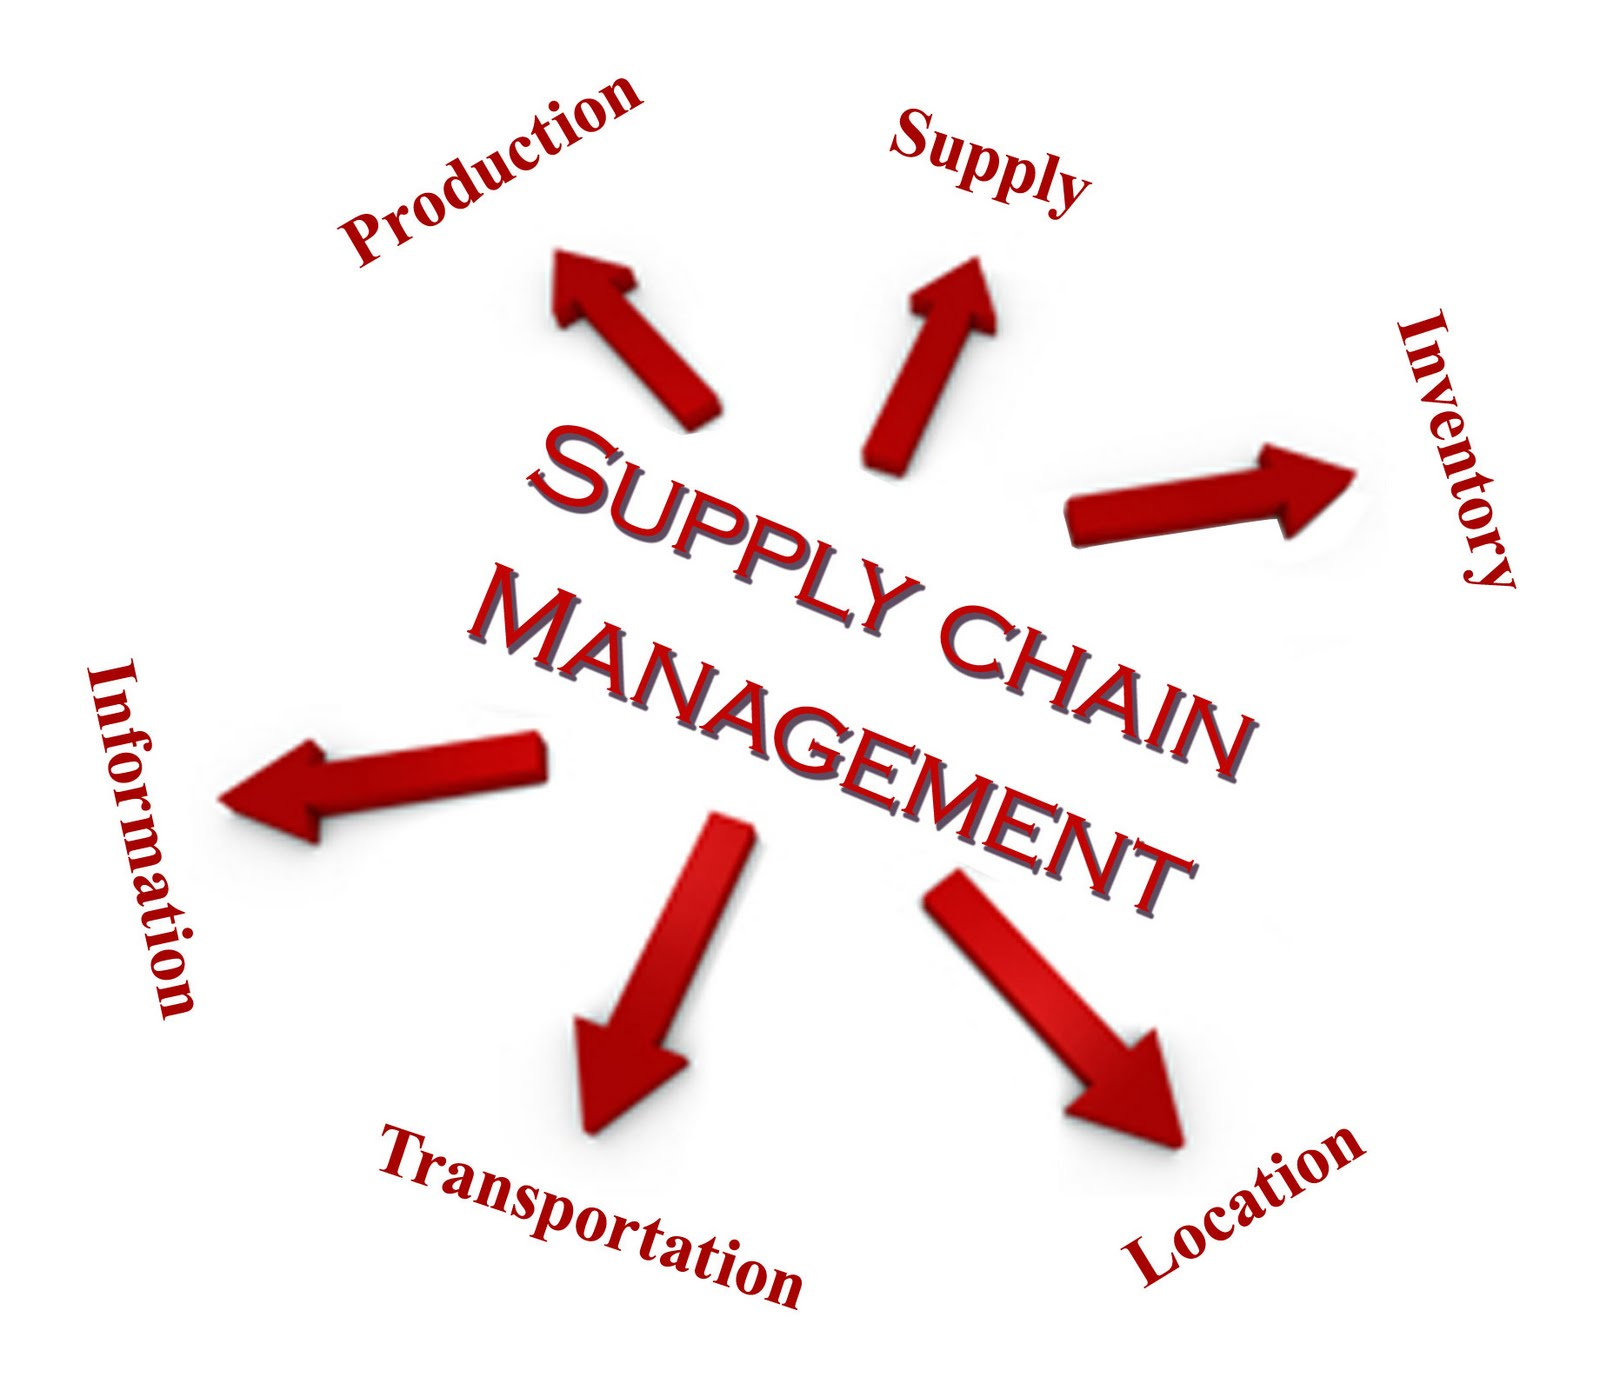 supply chain management and its component marketing supply chain management and its component